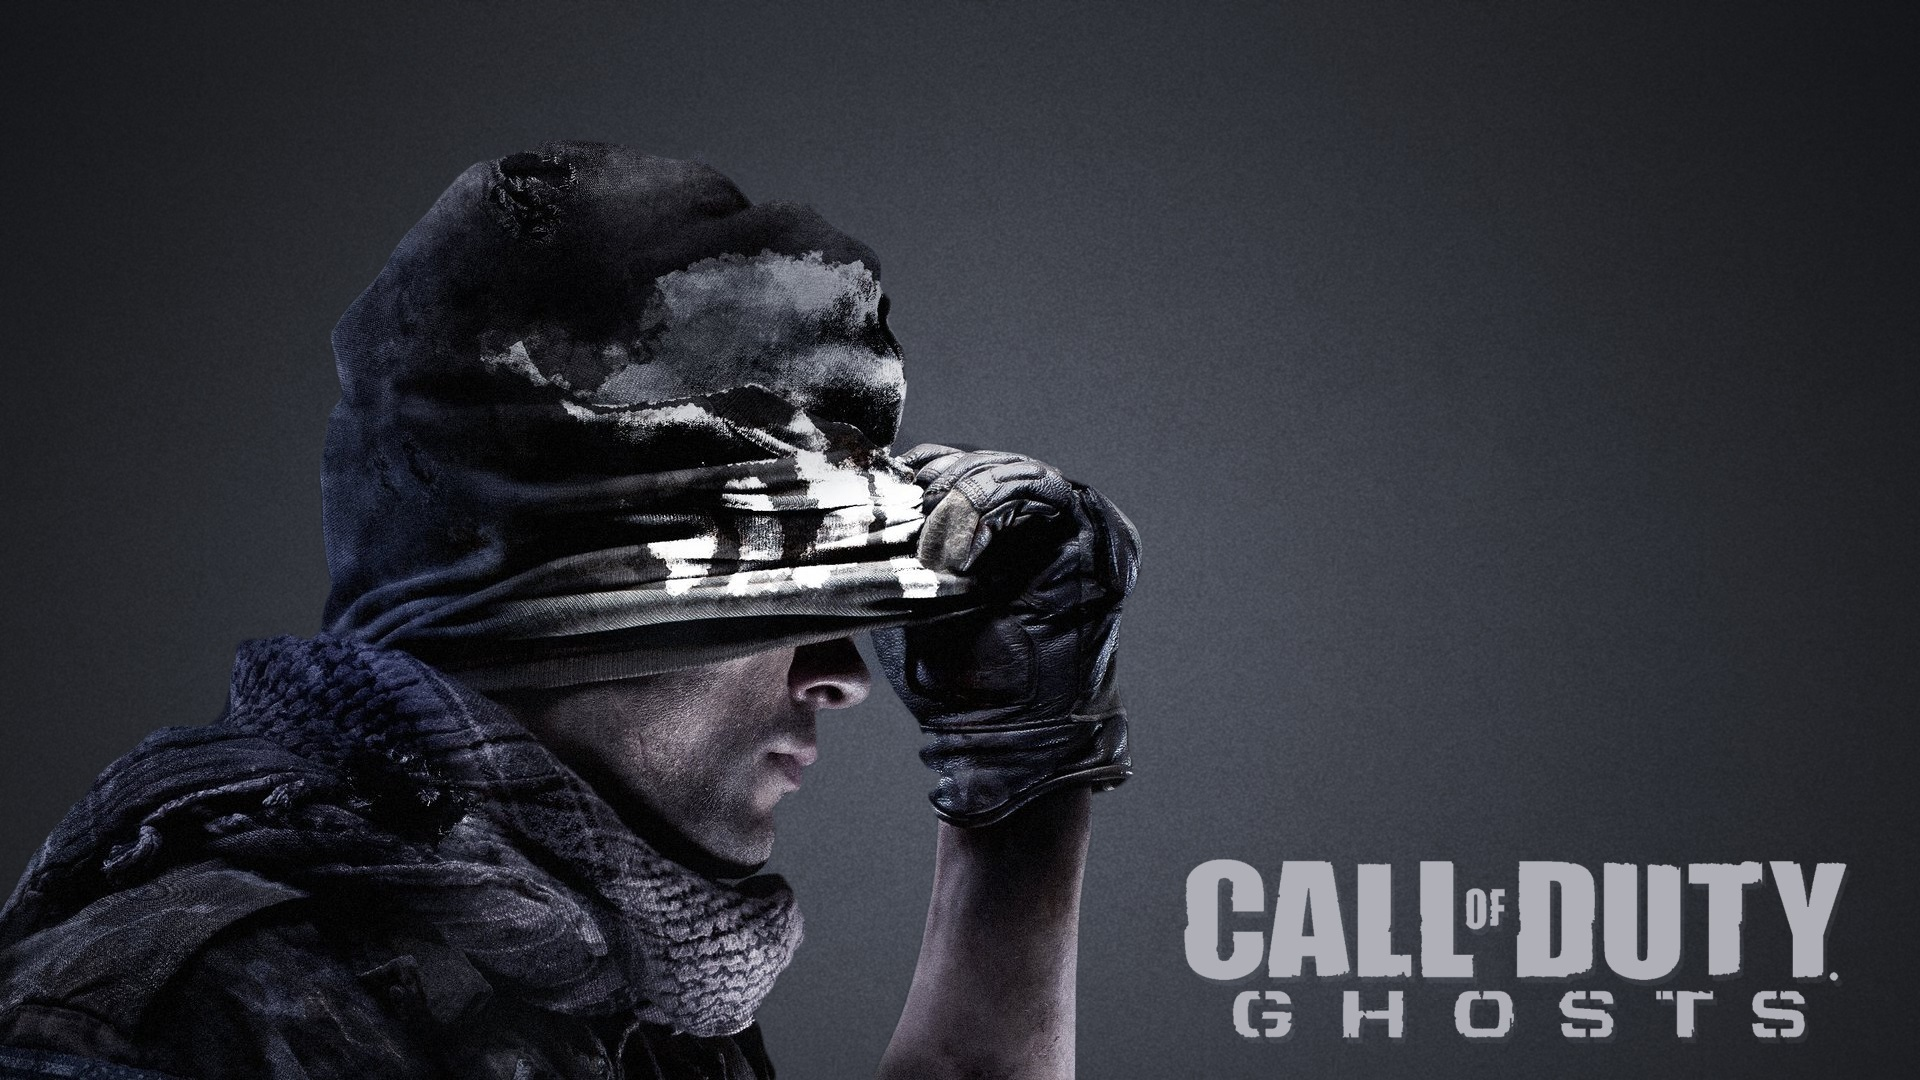 Call of duty ghosts wallpaper 8 voltagebd Choice Image